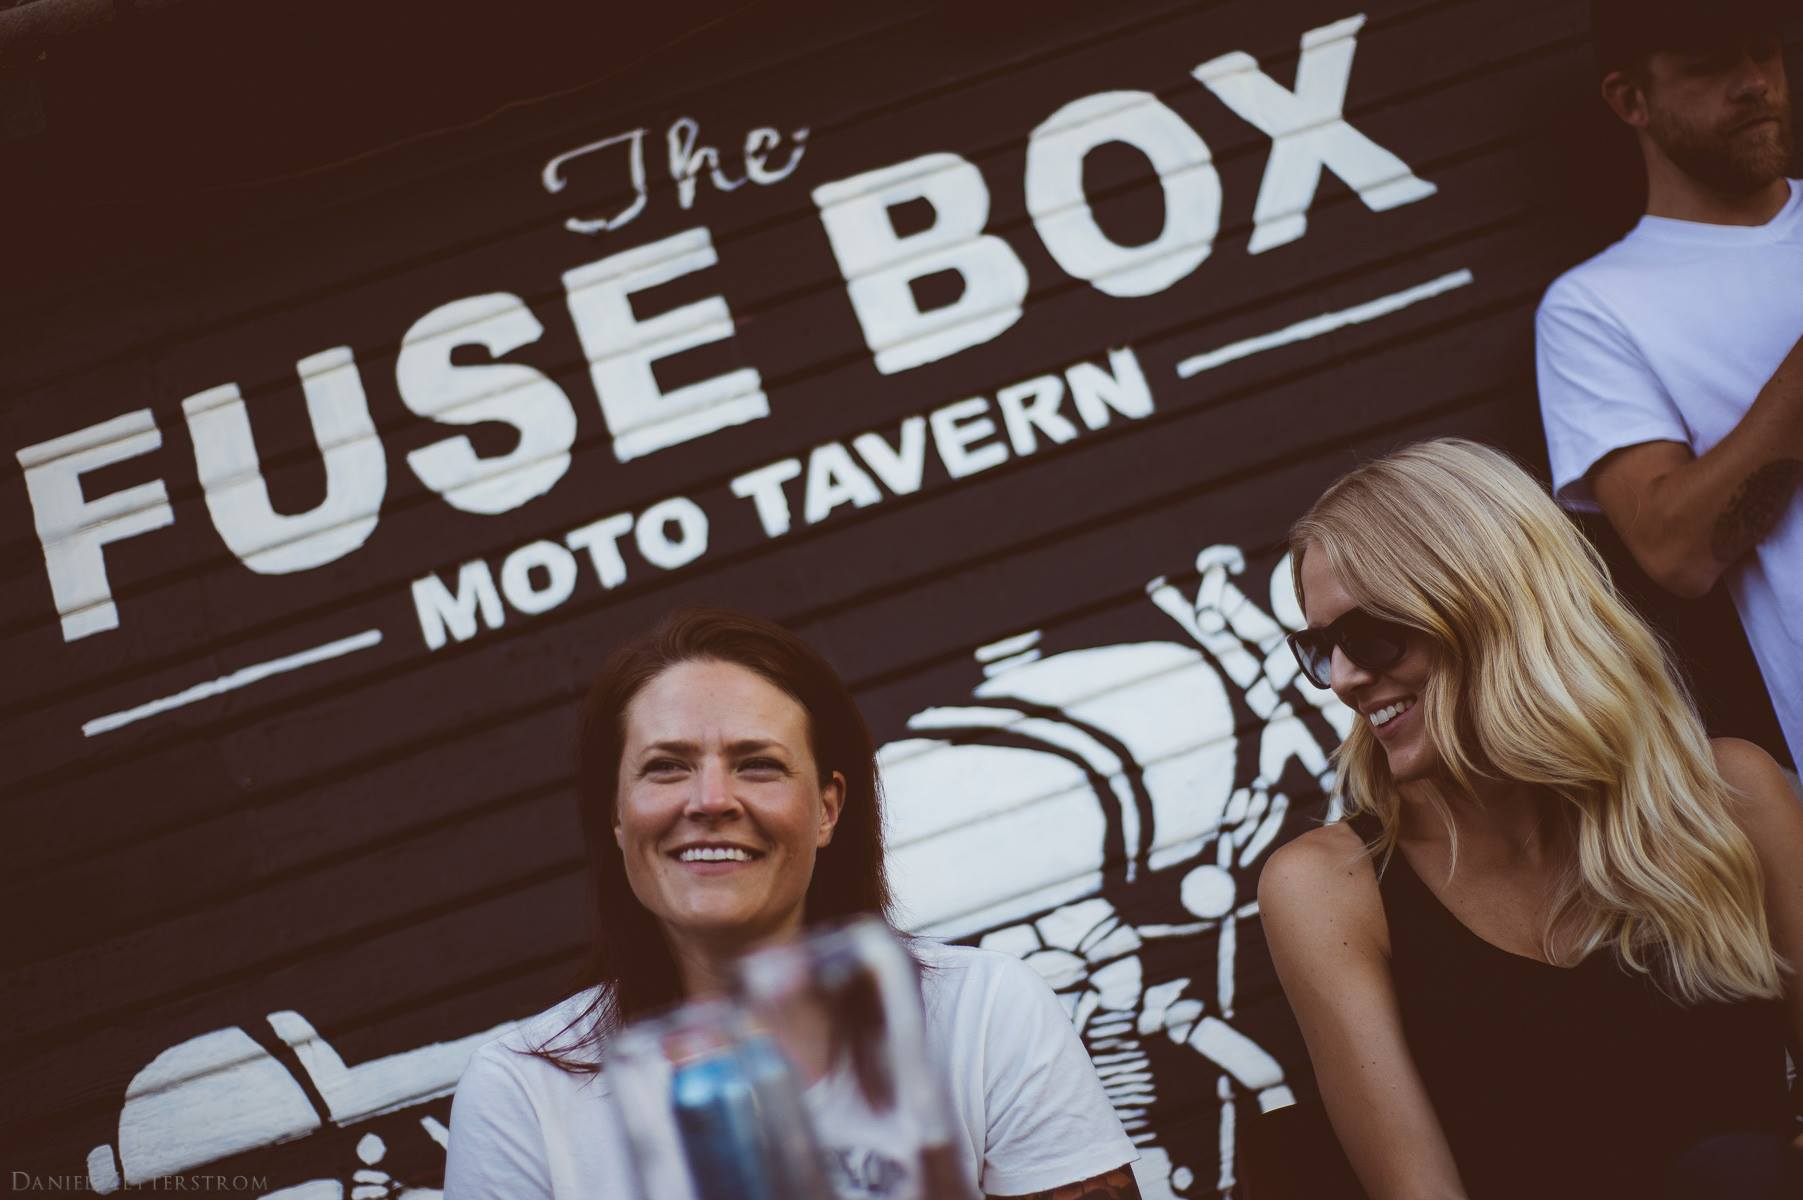 The Fuse Box is a moto tavern just off Aurora in Fremont that should perfectly satisfy that hog loving, tire squealing obsessed side of you.  (Photo Courtesy Fuse Box)